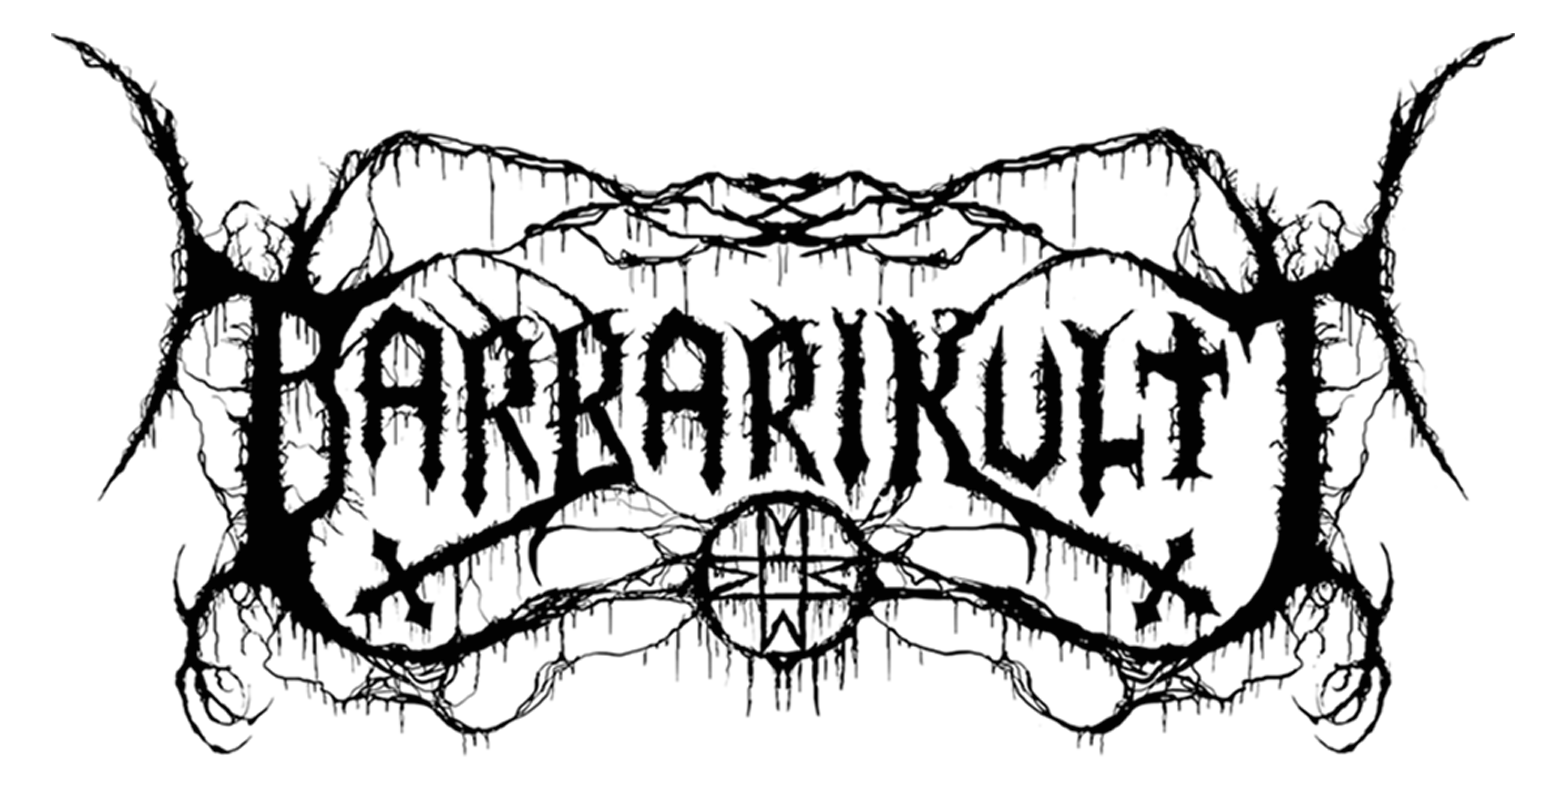 Logo-barbanegroweb